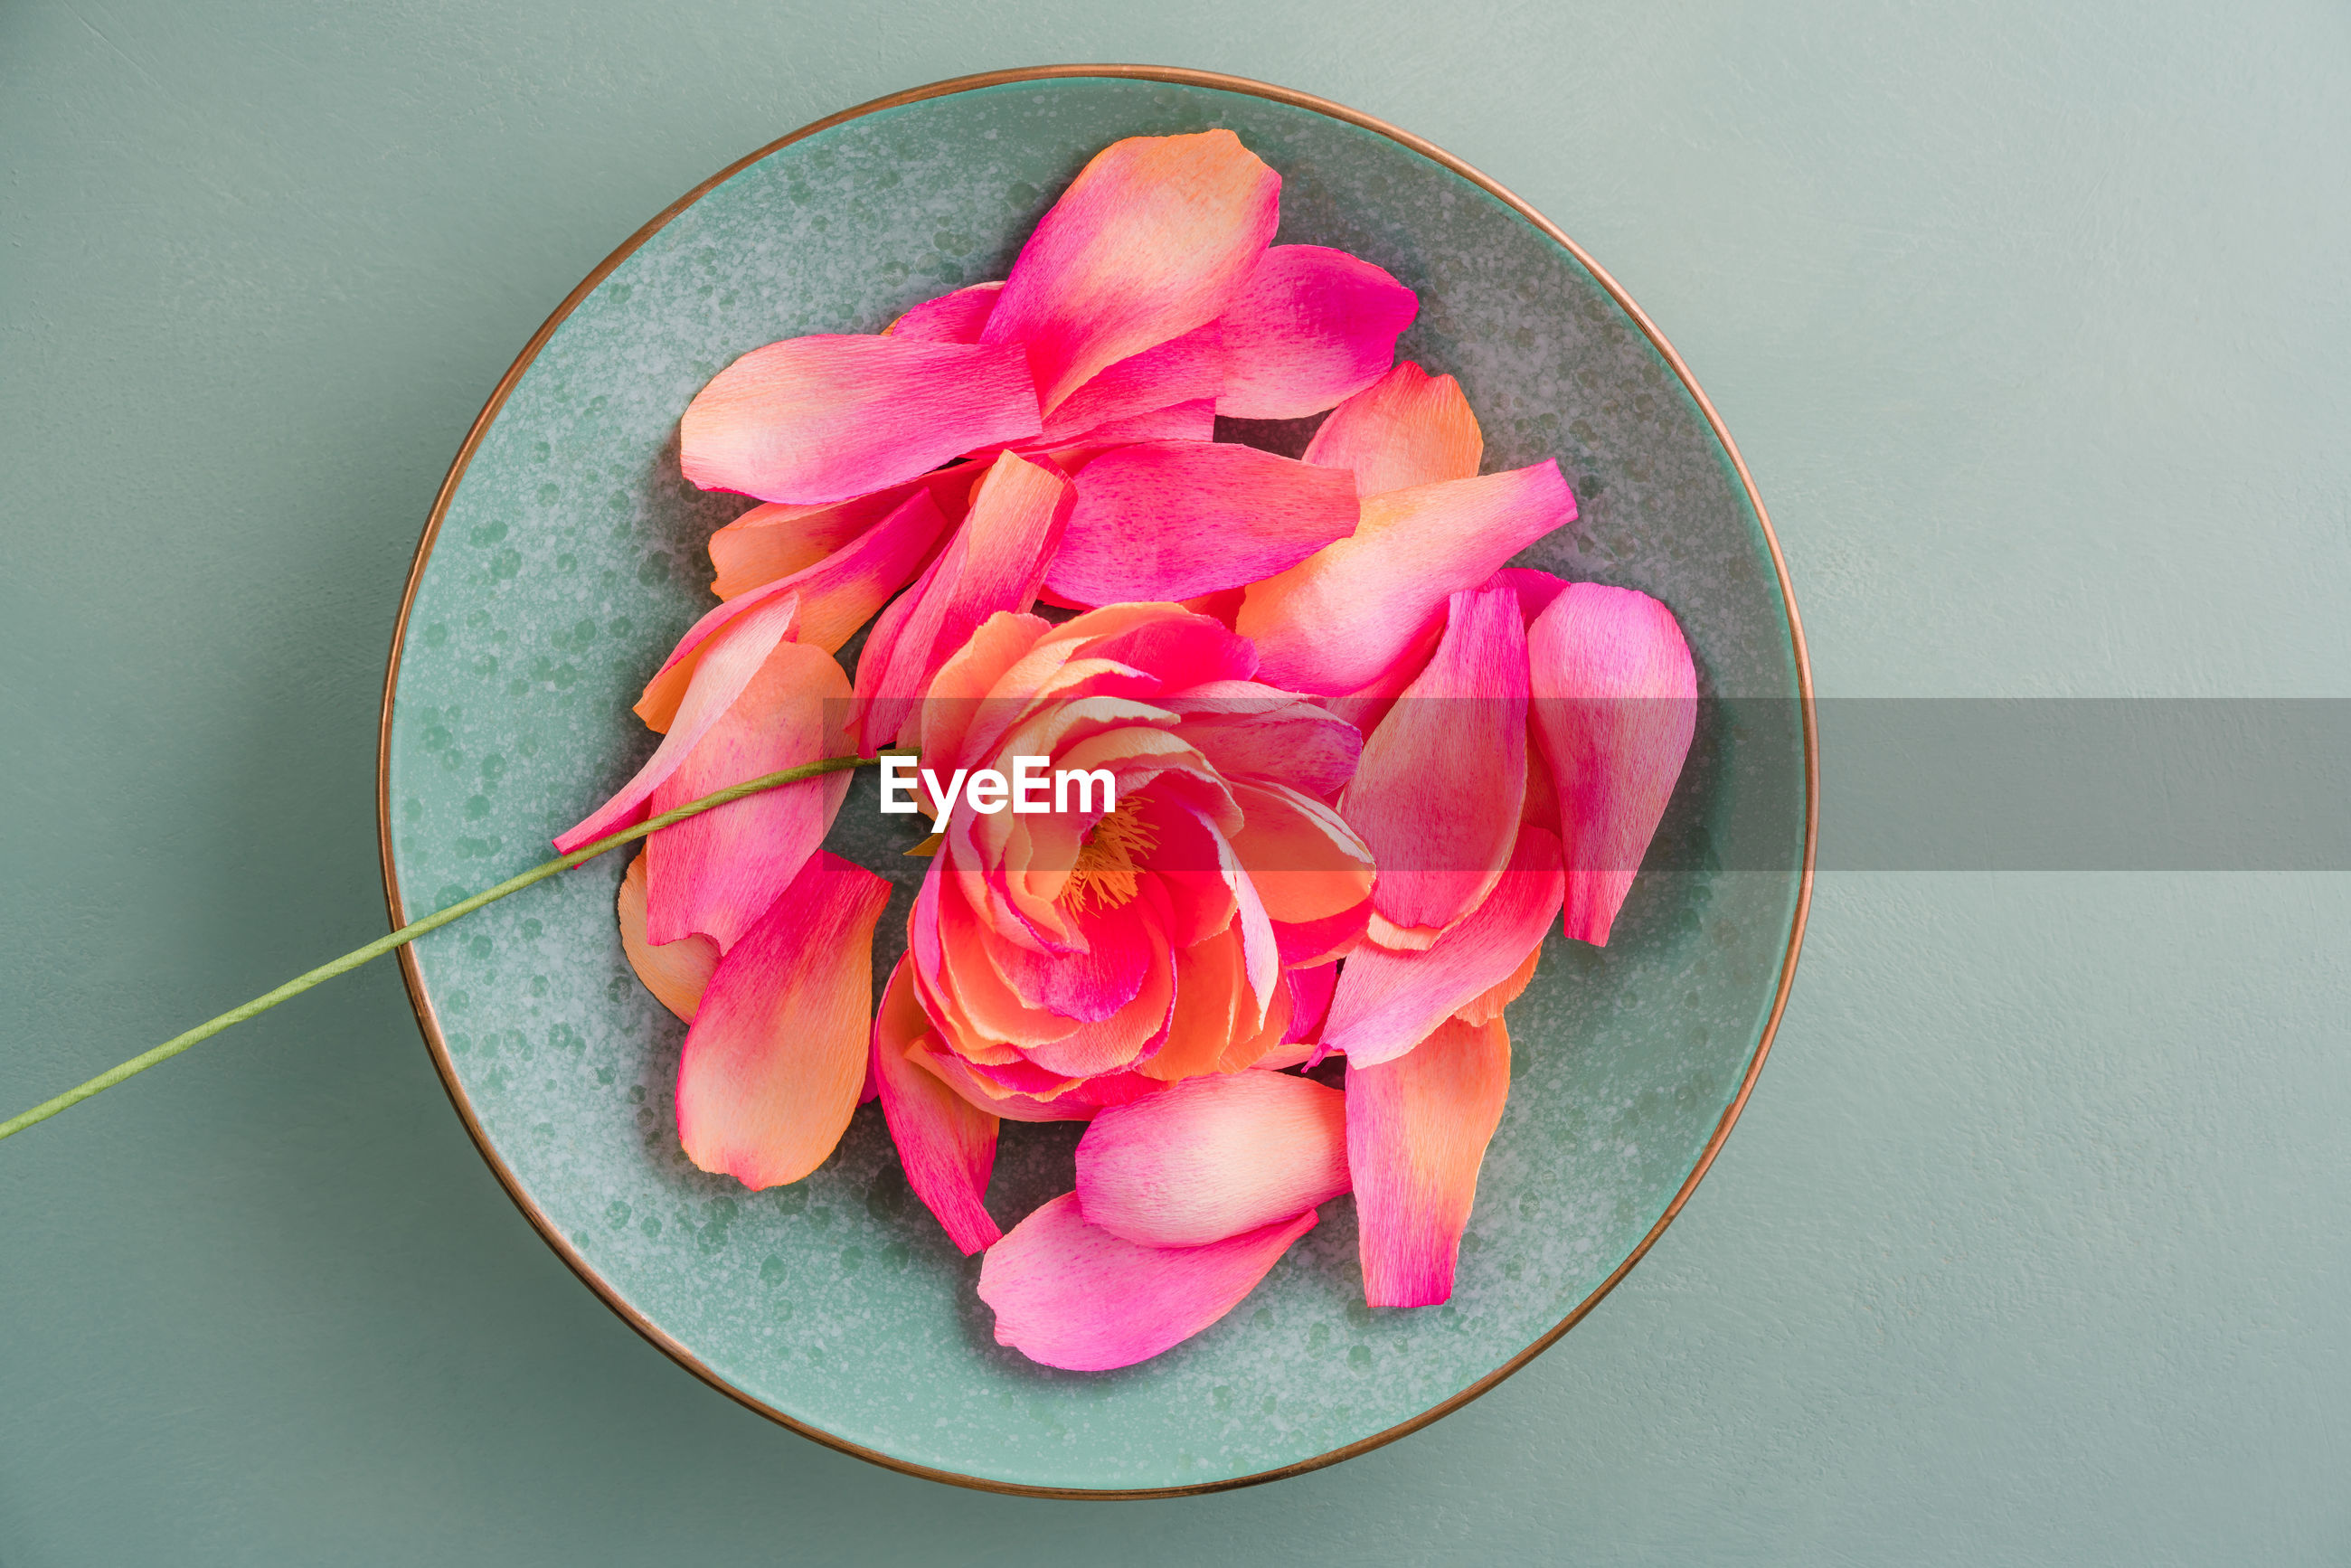 HIGH ANGLE VIEW OF PINK ROSES IN BOWL